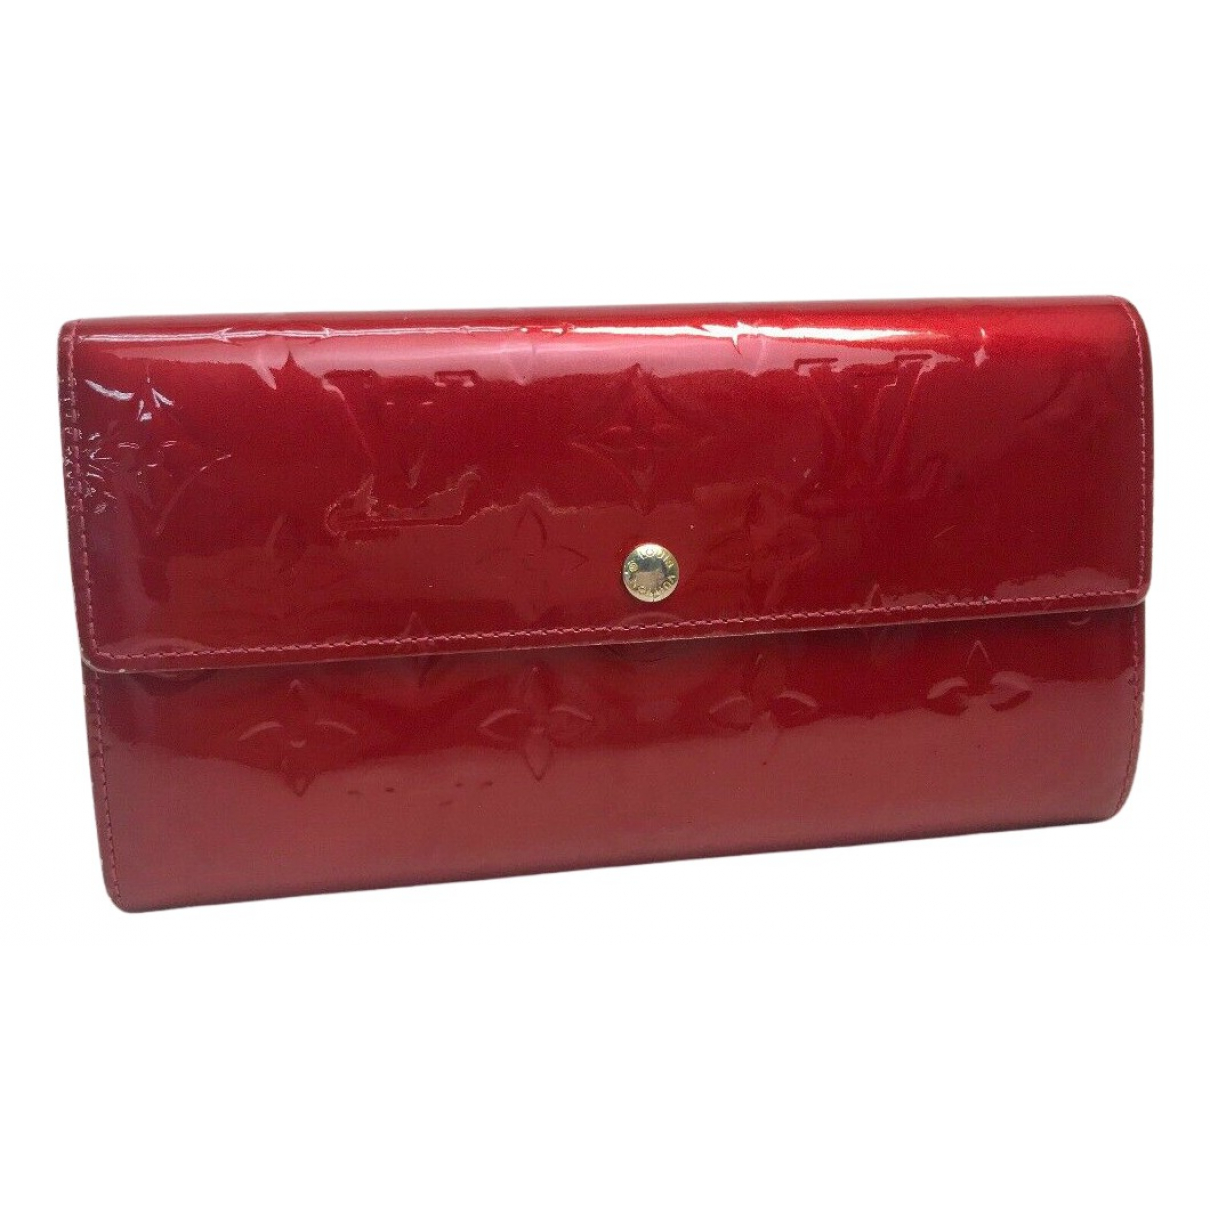 Louis Vuitton Sarah Red Patent leather wallet for Women N